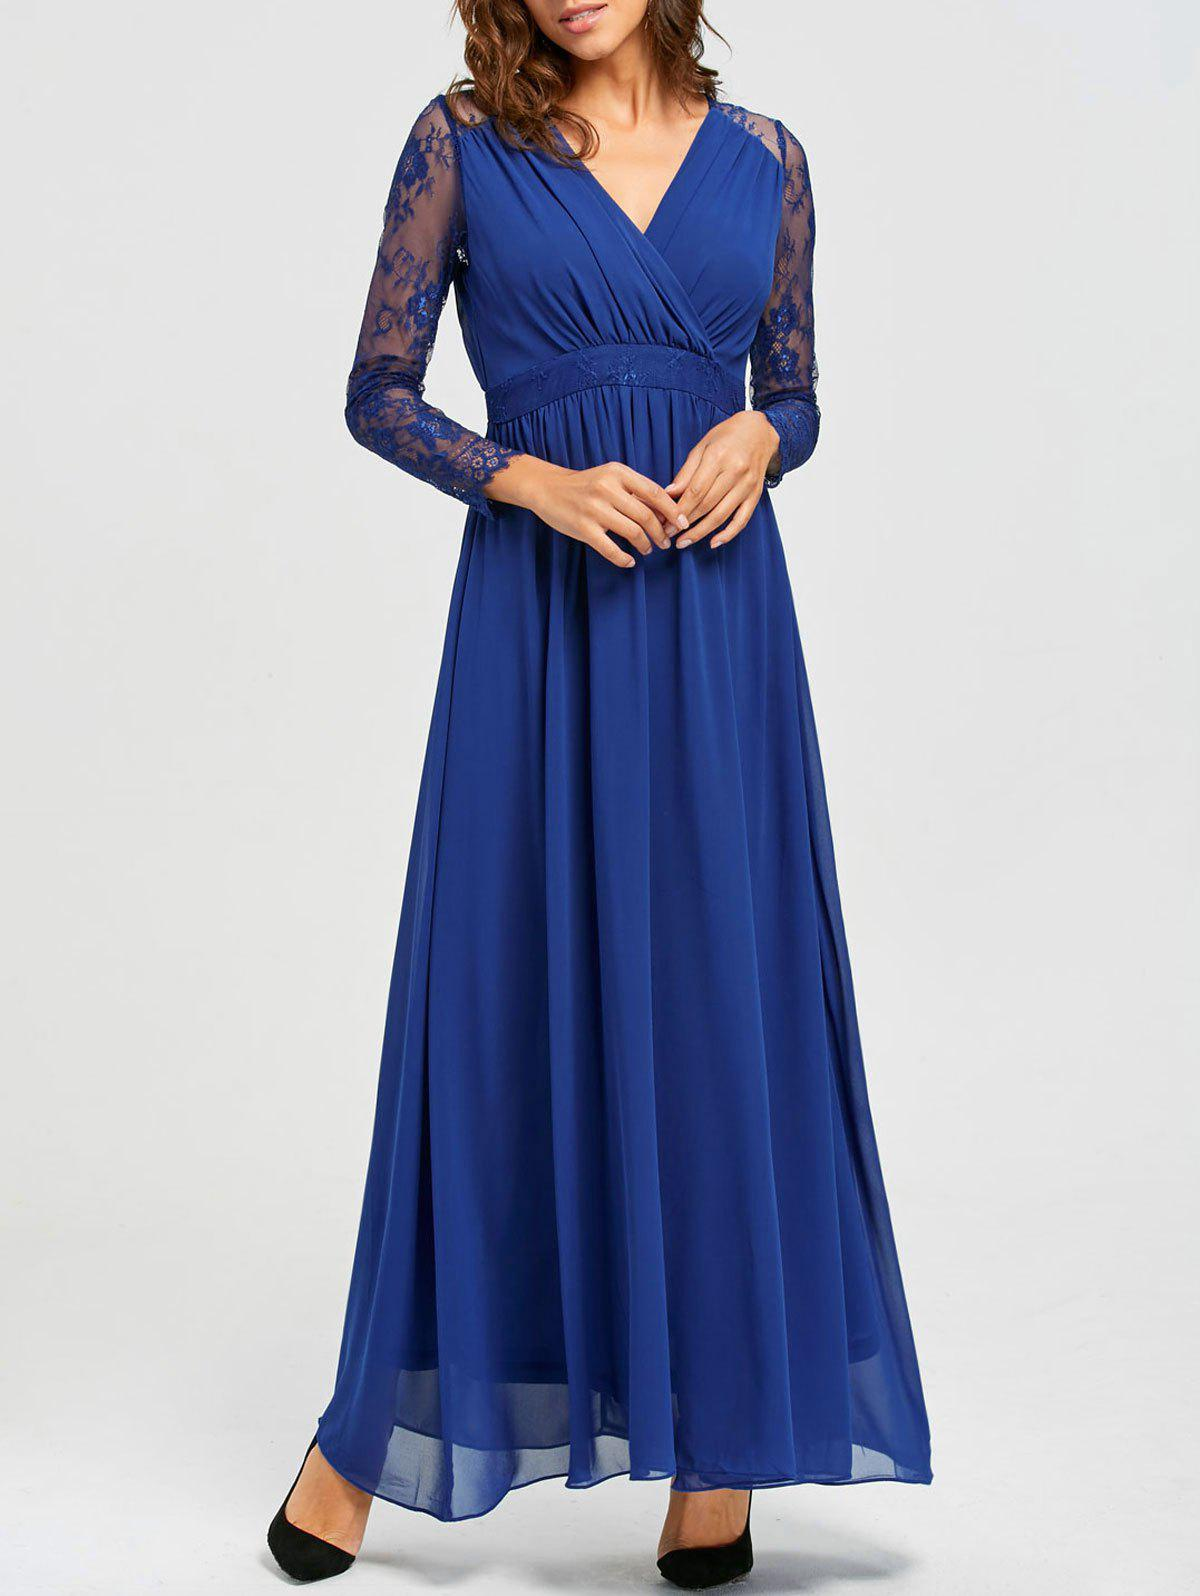 Lace Long Sleeve V-neck Floor Length Dress - BLUE XL